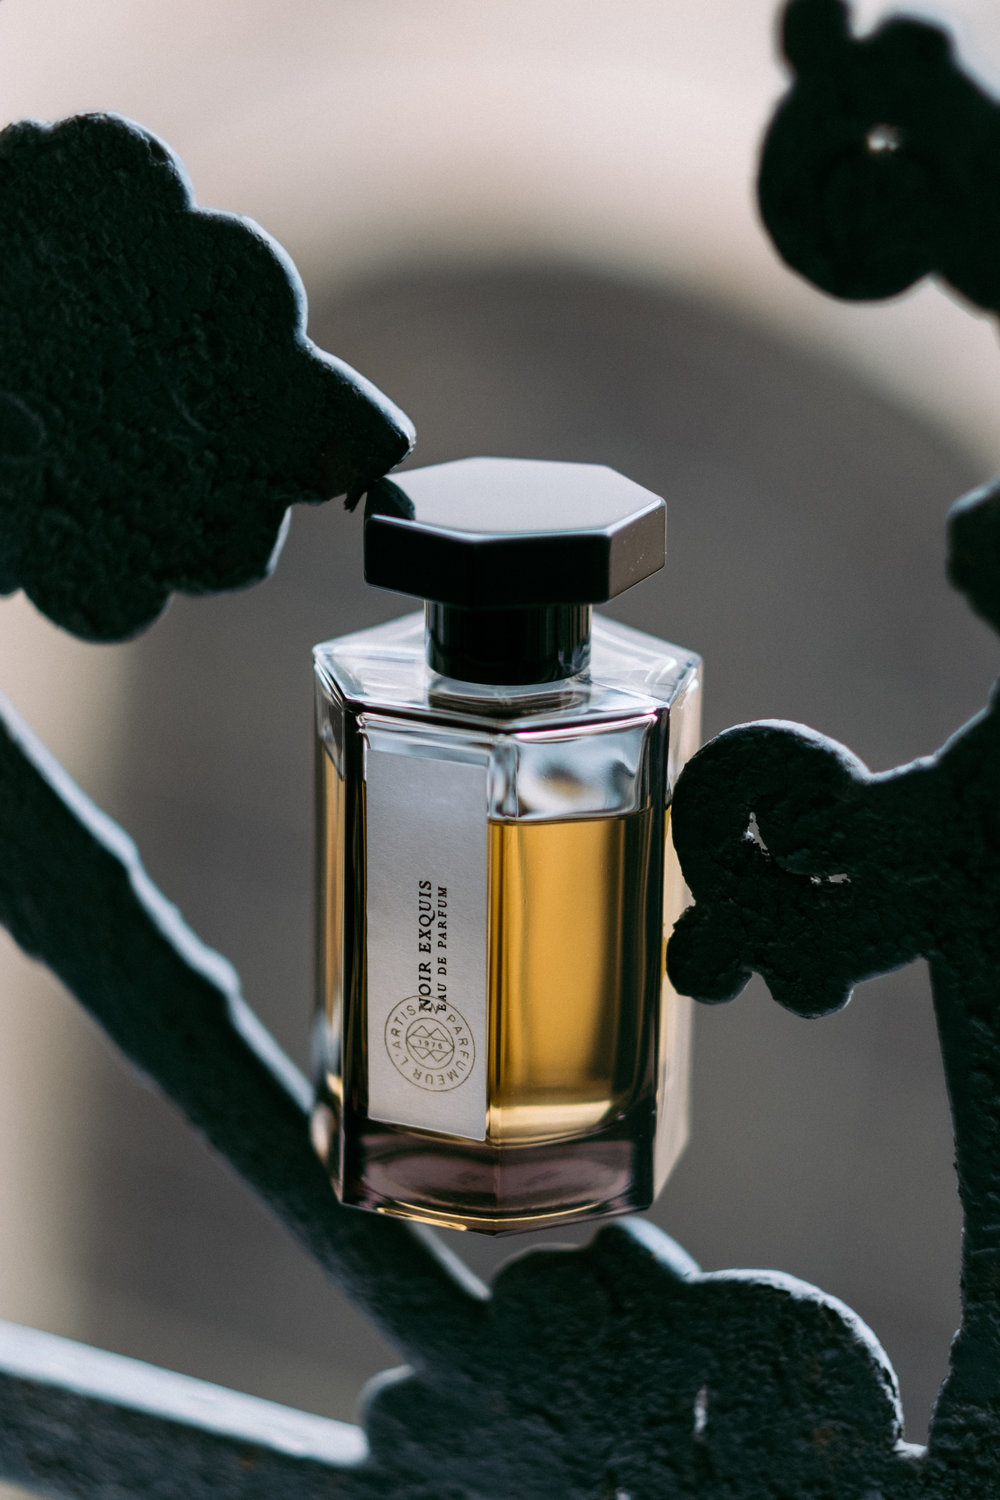 Take a look at  L'Artisan Parfumeur  which enchants me with its elegant packaging and amazing combination of notes. I got stroked by  Noir Exquis : its deep base embodies the embrace of coffee and dried fruit. This scent will please those who prefer the unusual sweet fragrances.